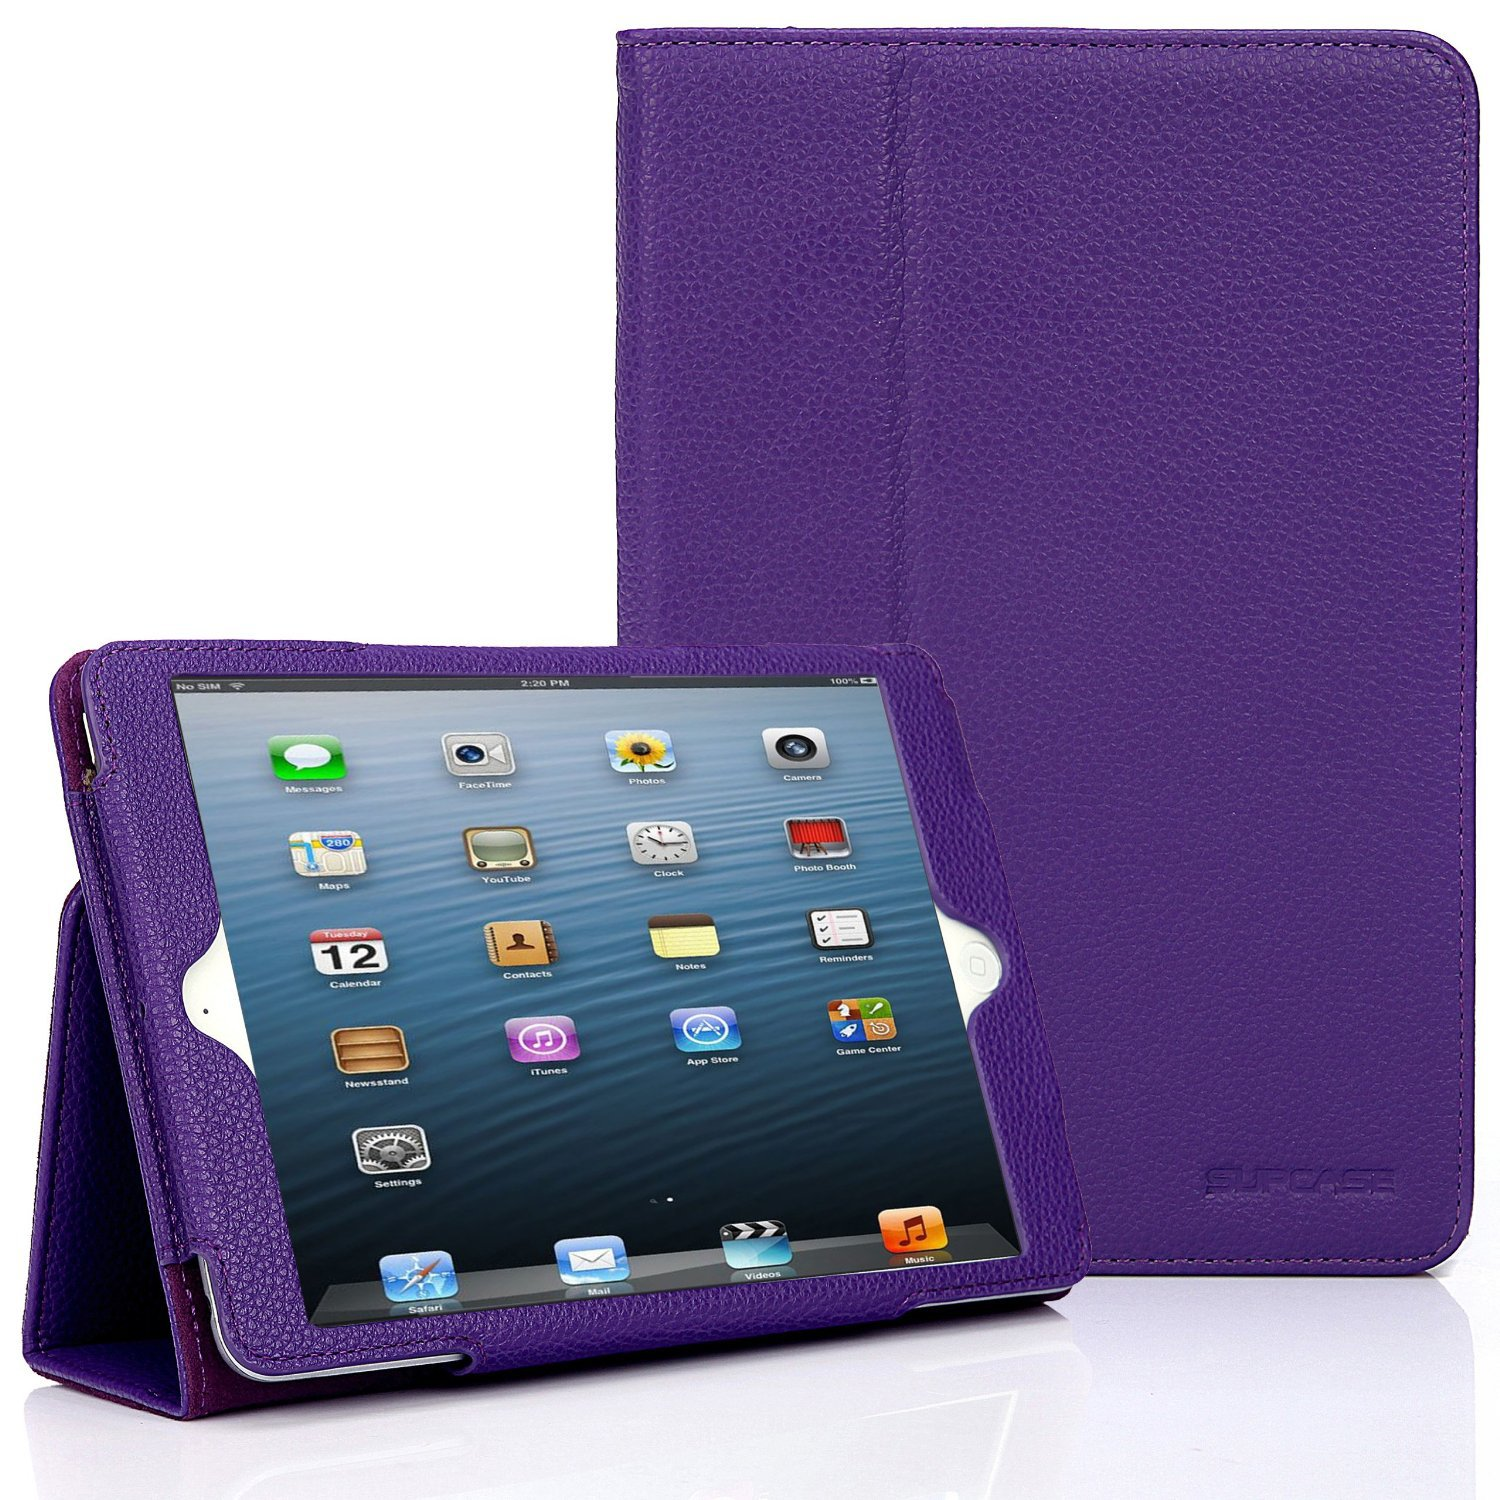 for 7 9 inch apple ipad mini purple mn 62a pl purple. Black Bedroom Furniture Sets. Home Design Ideas